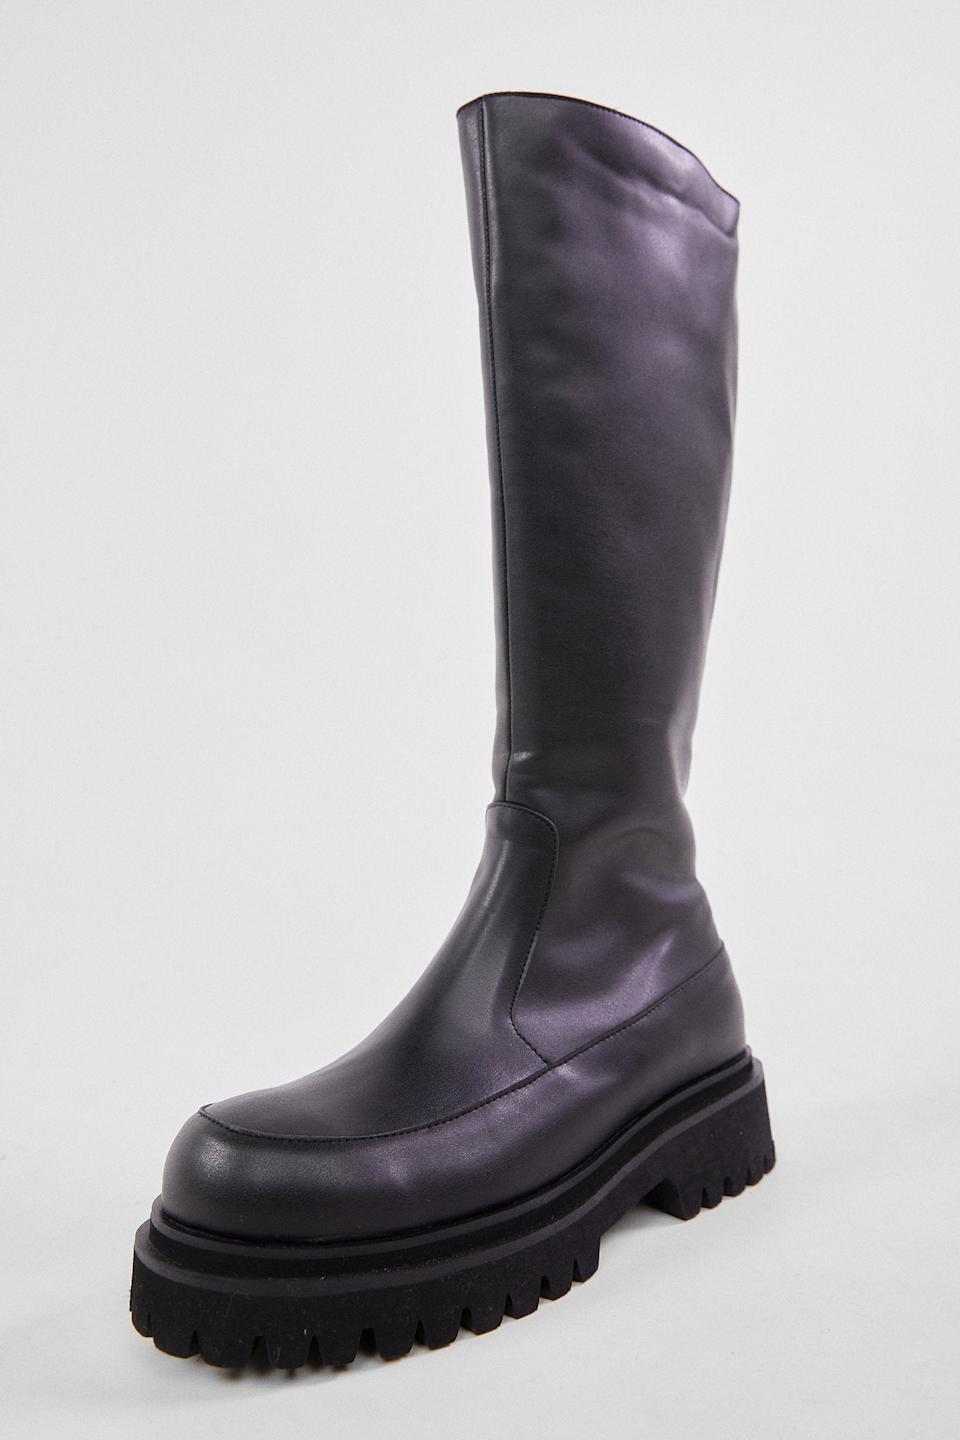 """<br><br><strong>The Source Unknown</strong> Lug Sole Tall Boots, Black, $, available at <a href=""""https://go.skimresources.com/?id=30283X879131&url=https%3A%2F%2Fthesourceunknown.com%2Fcollections%2Fshoes-bags%2Fproducts%2Flug-sole-tall-boots-black"""" rel=""""nofollow noopener"""" target=""""_blank"""" data-ylk=""""slk:The Source Unknown"""" class=""""link rapid-noclick-resp"""">The Source Unknown</a>"""